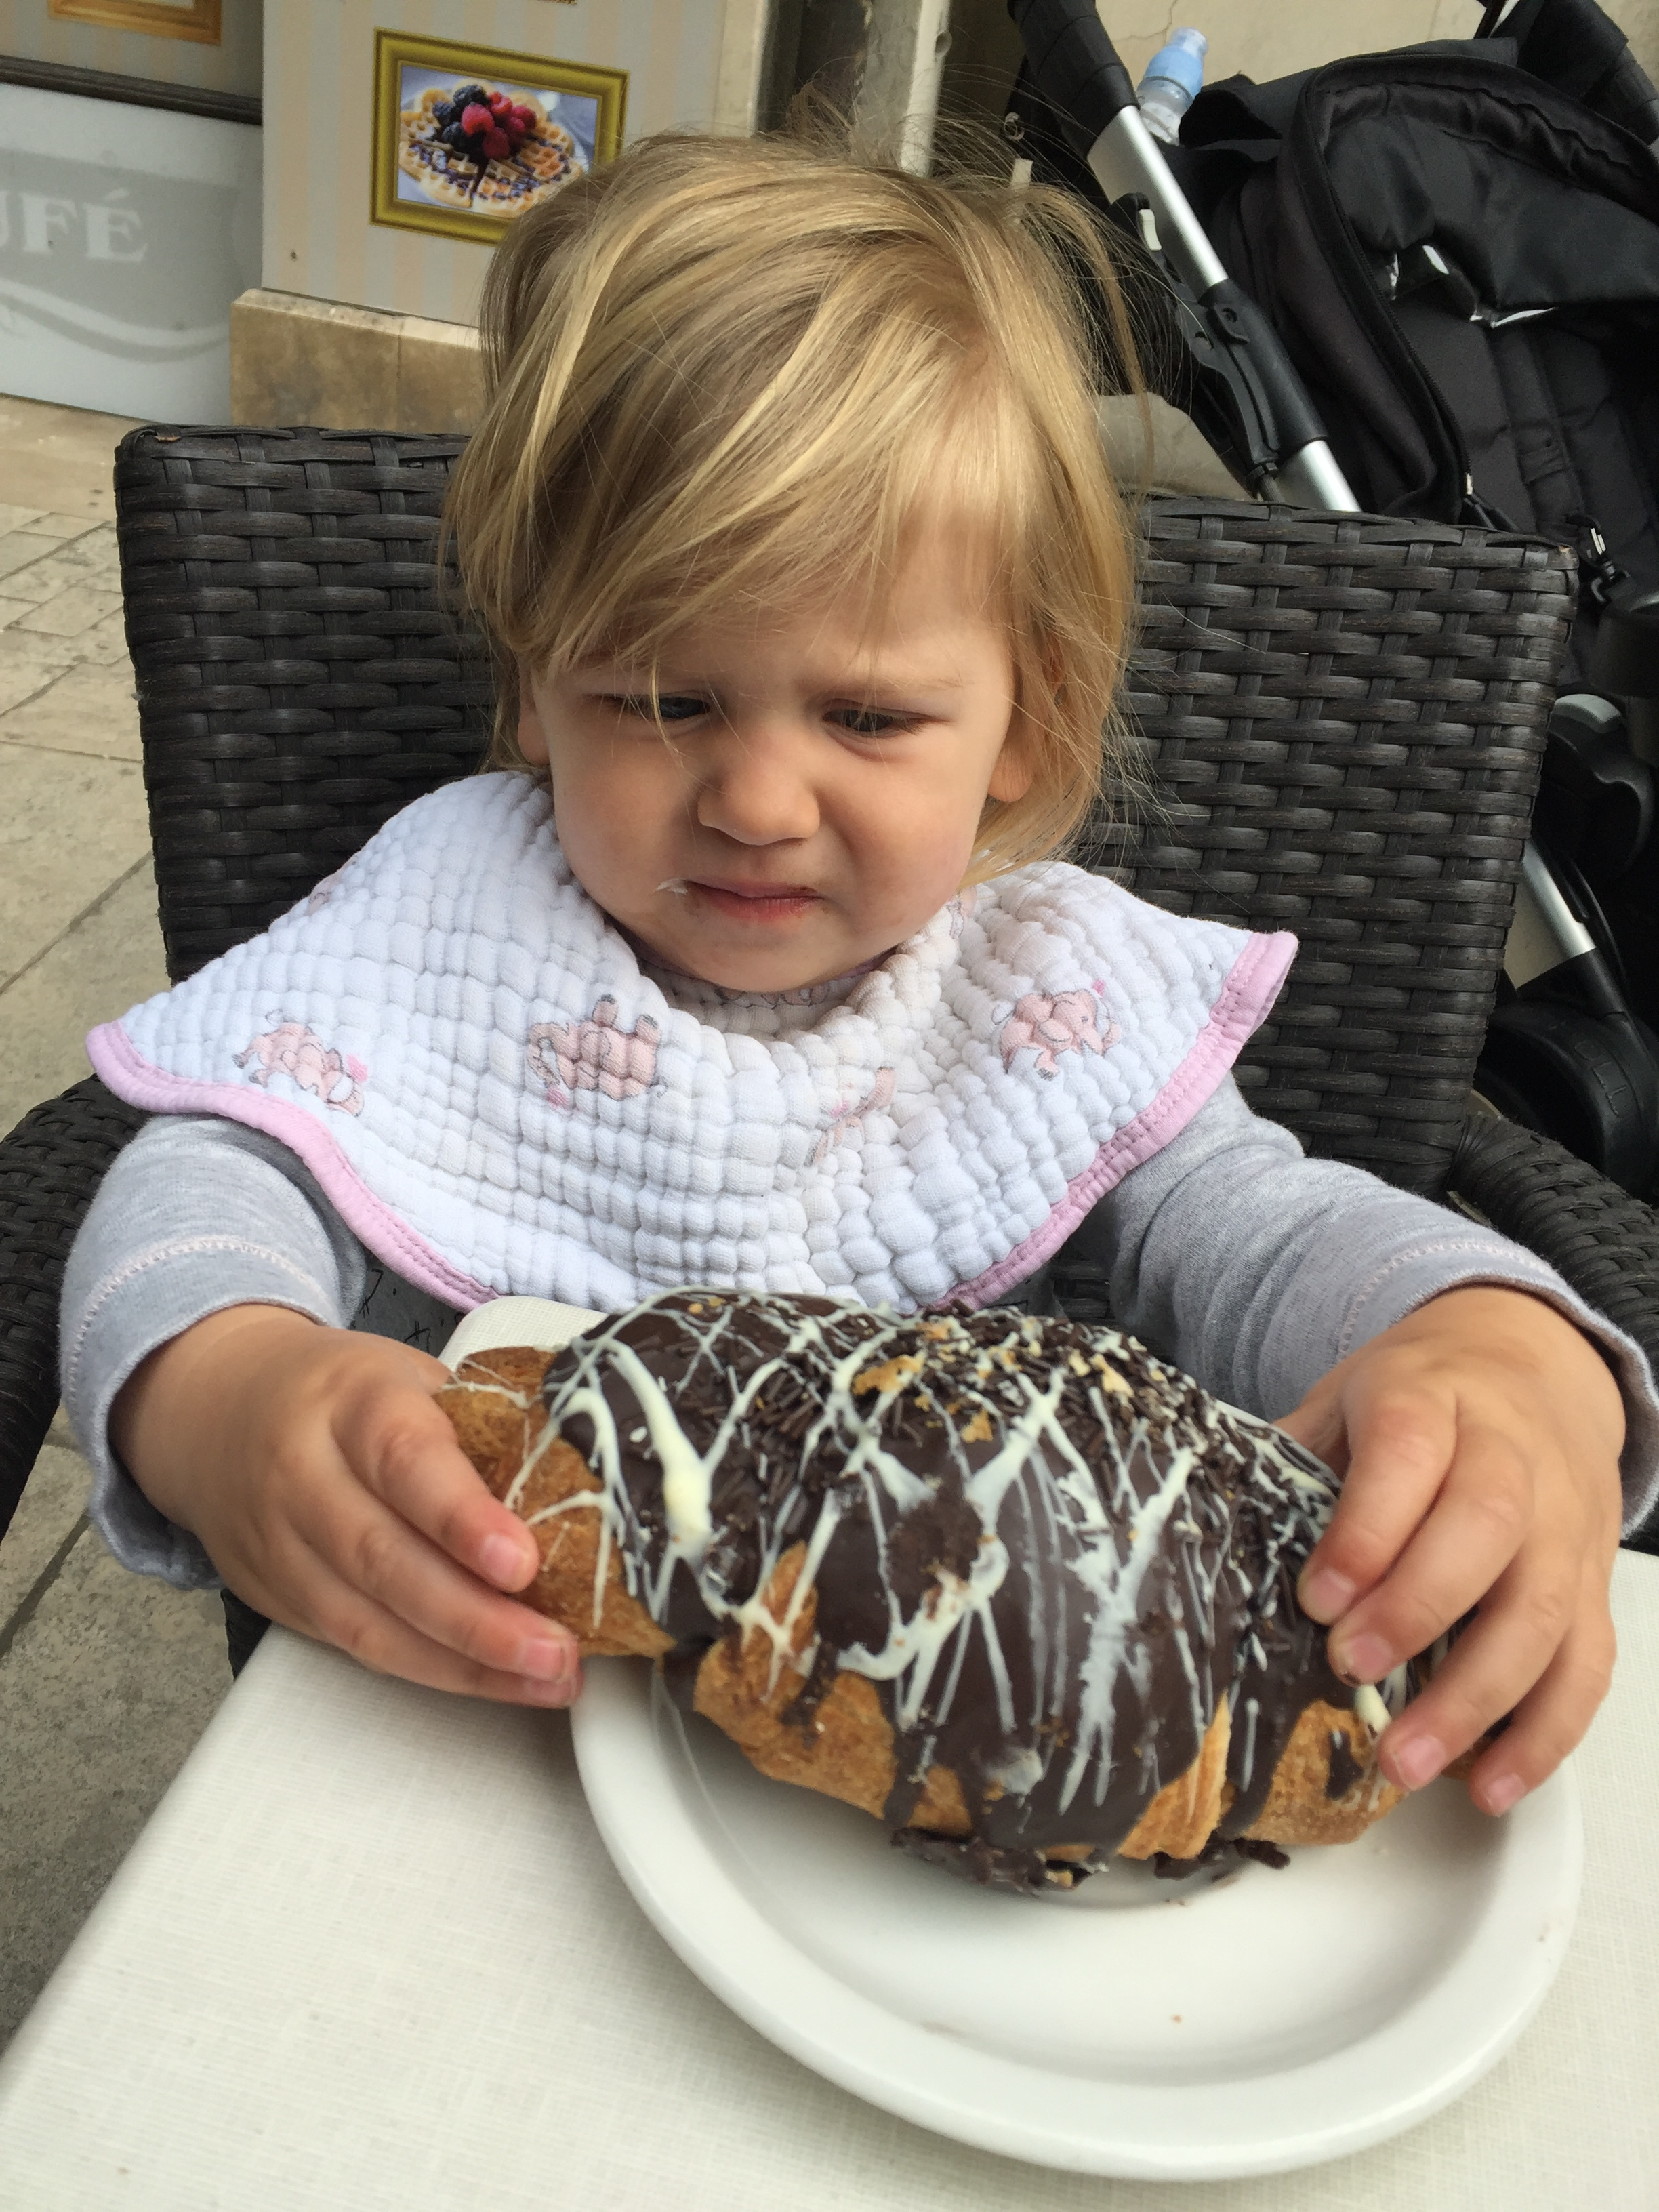 She looks unimpressed, but she ate a lot of that giant pastry